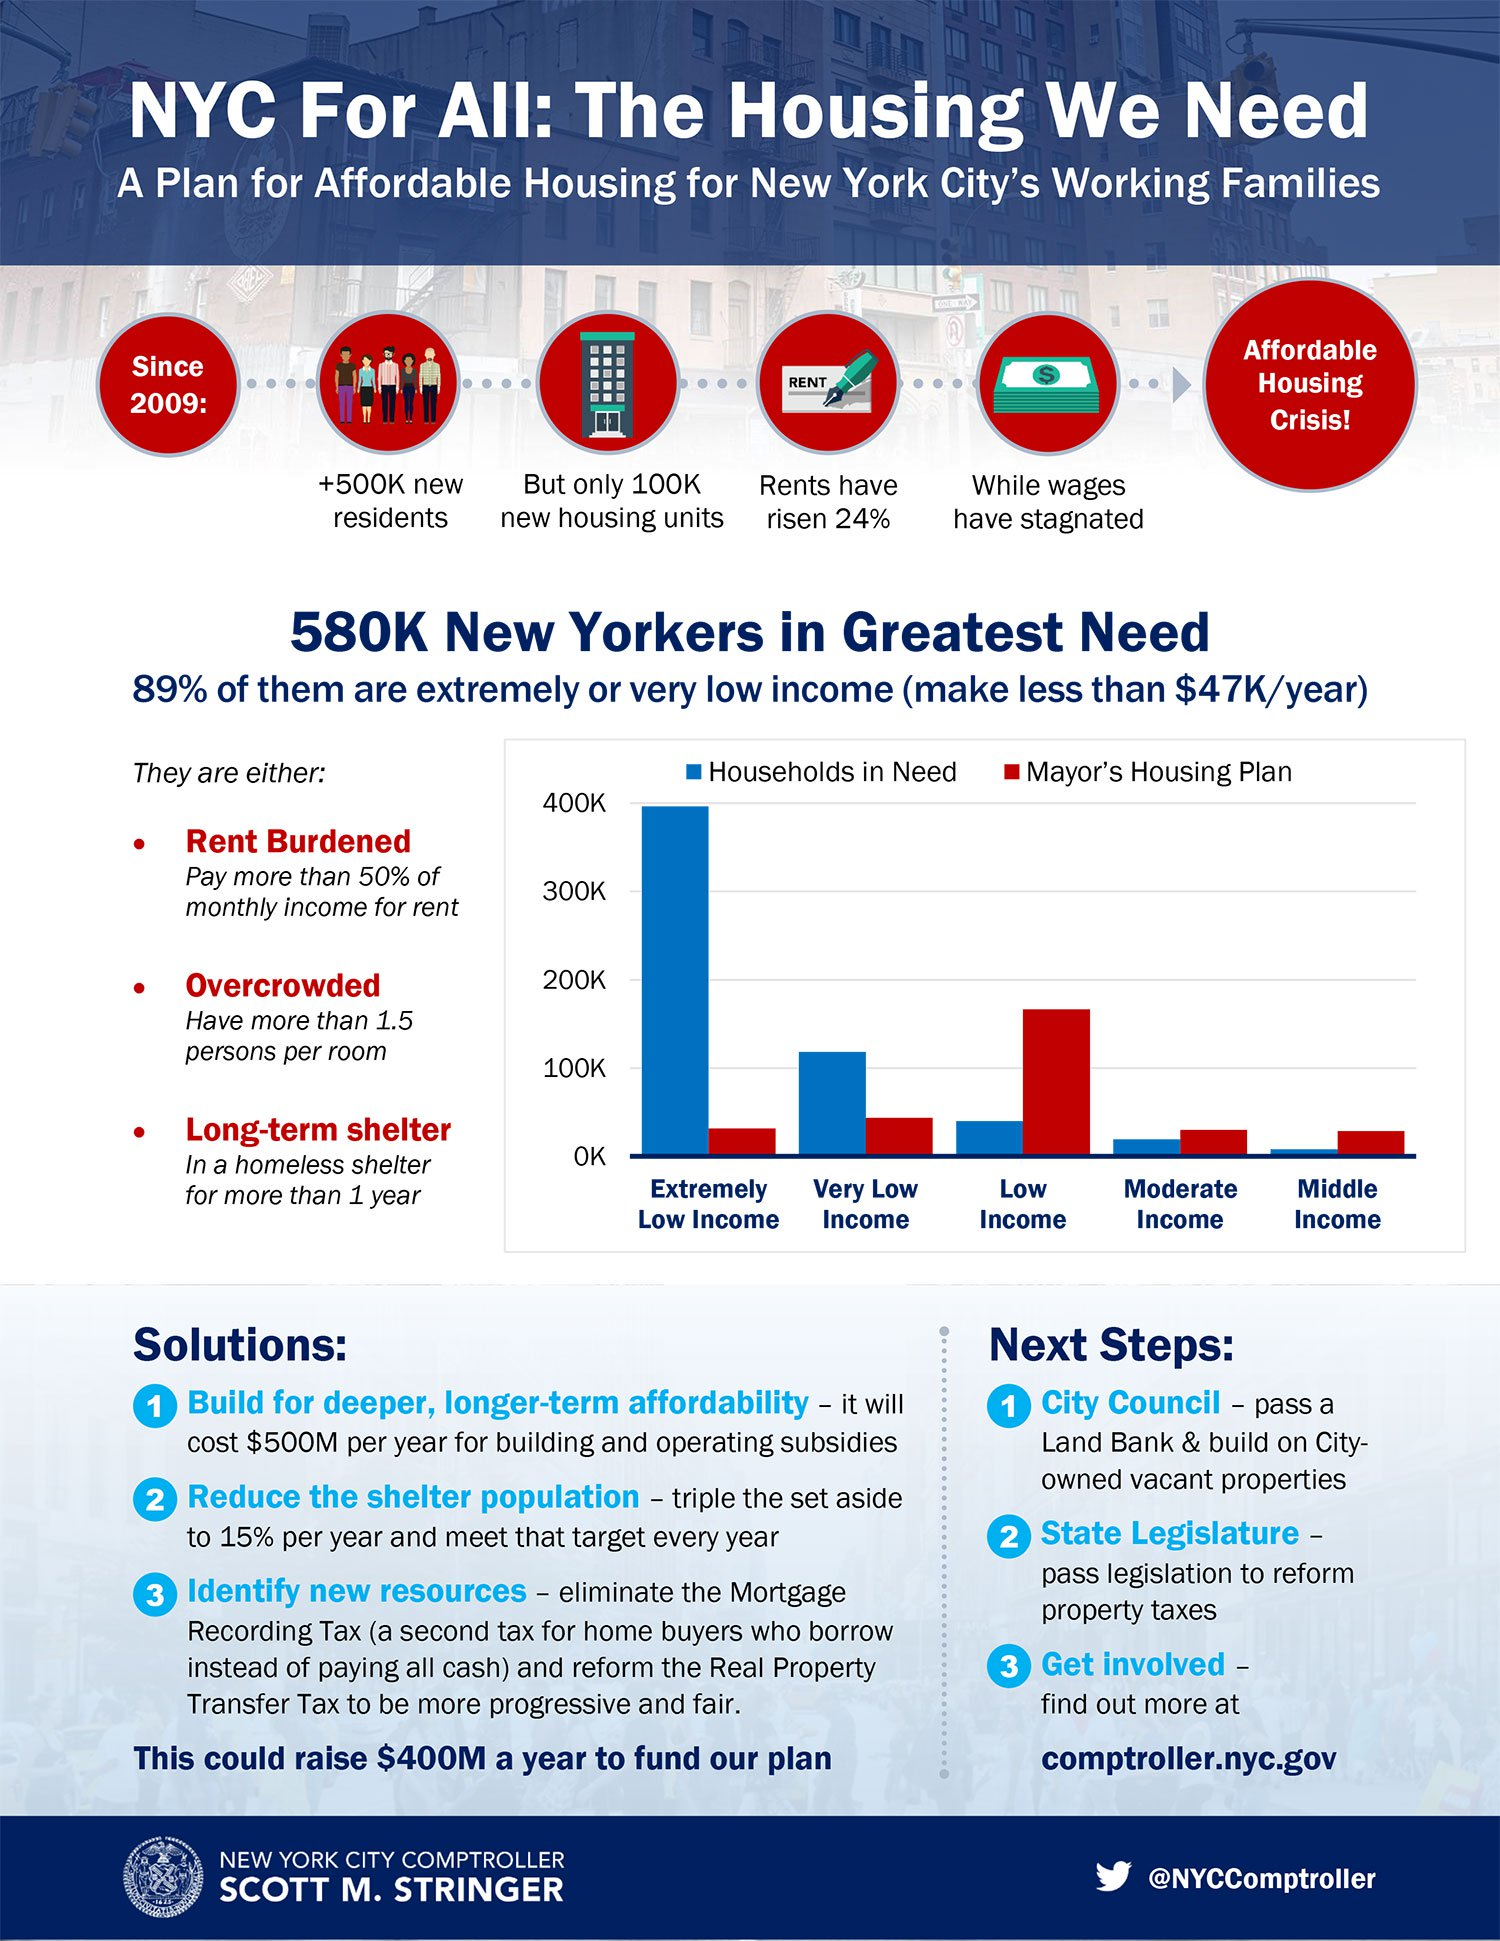 NYC For All: The Housing We Need : Office of the New York City